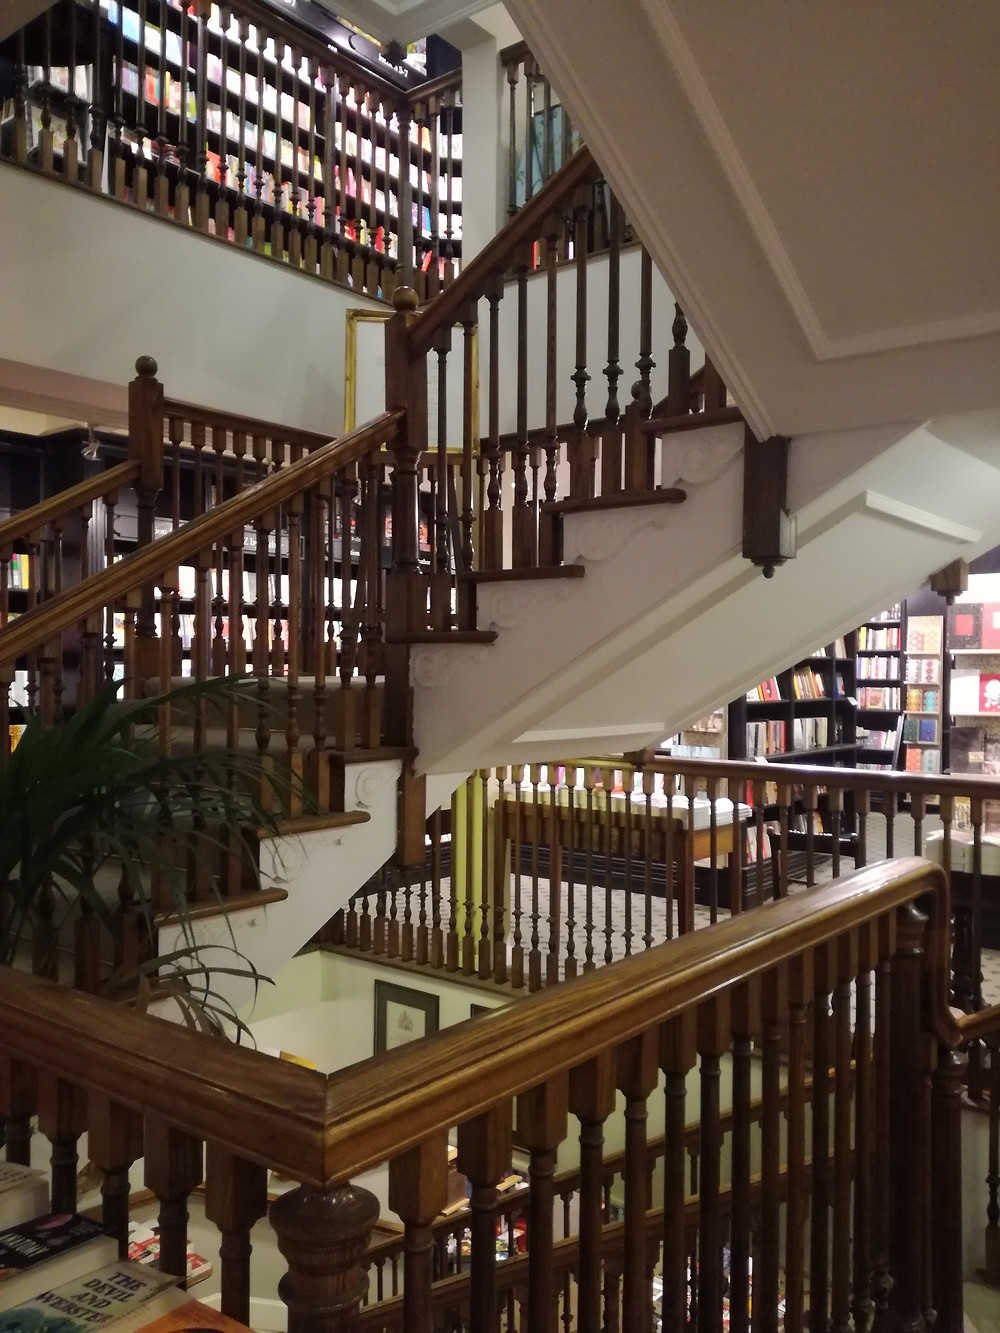 Top Livrarias em Piccadilly-Hatchard's Piccadilly by Nara Vidal